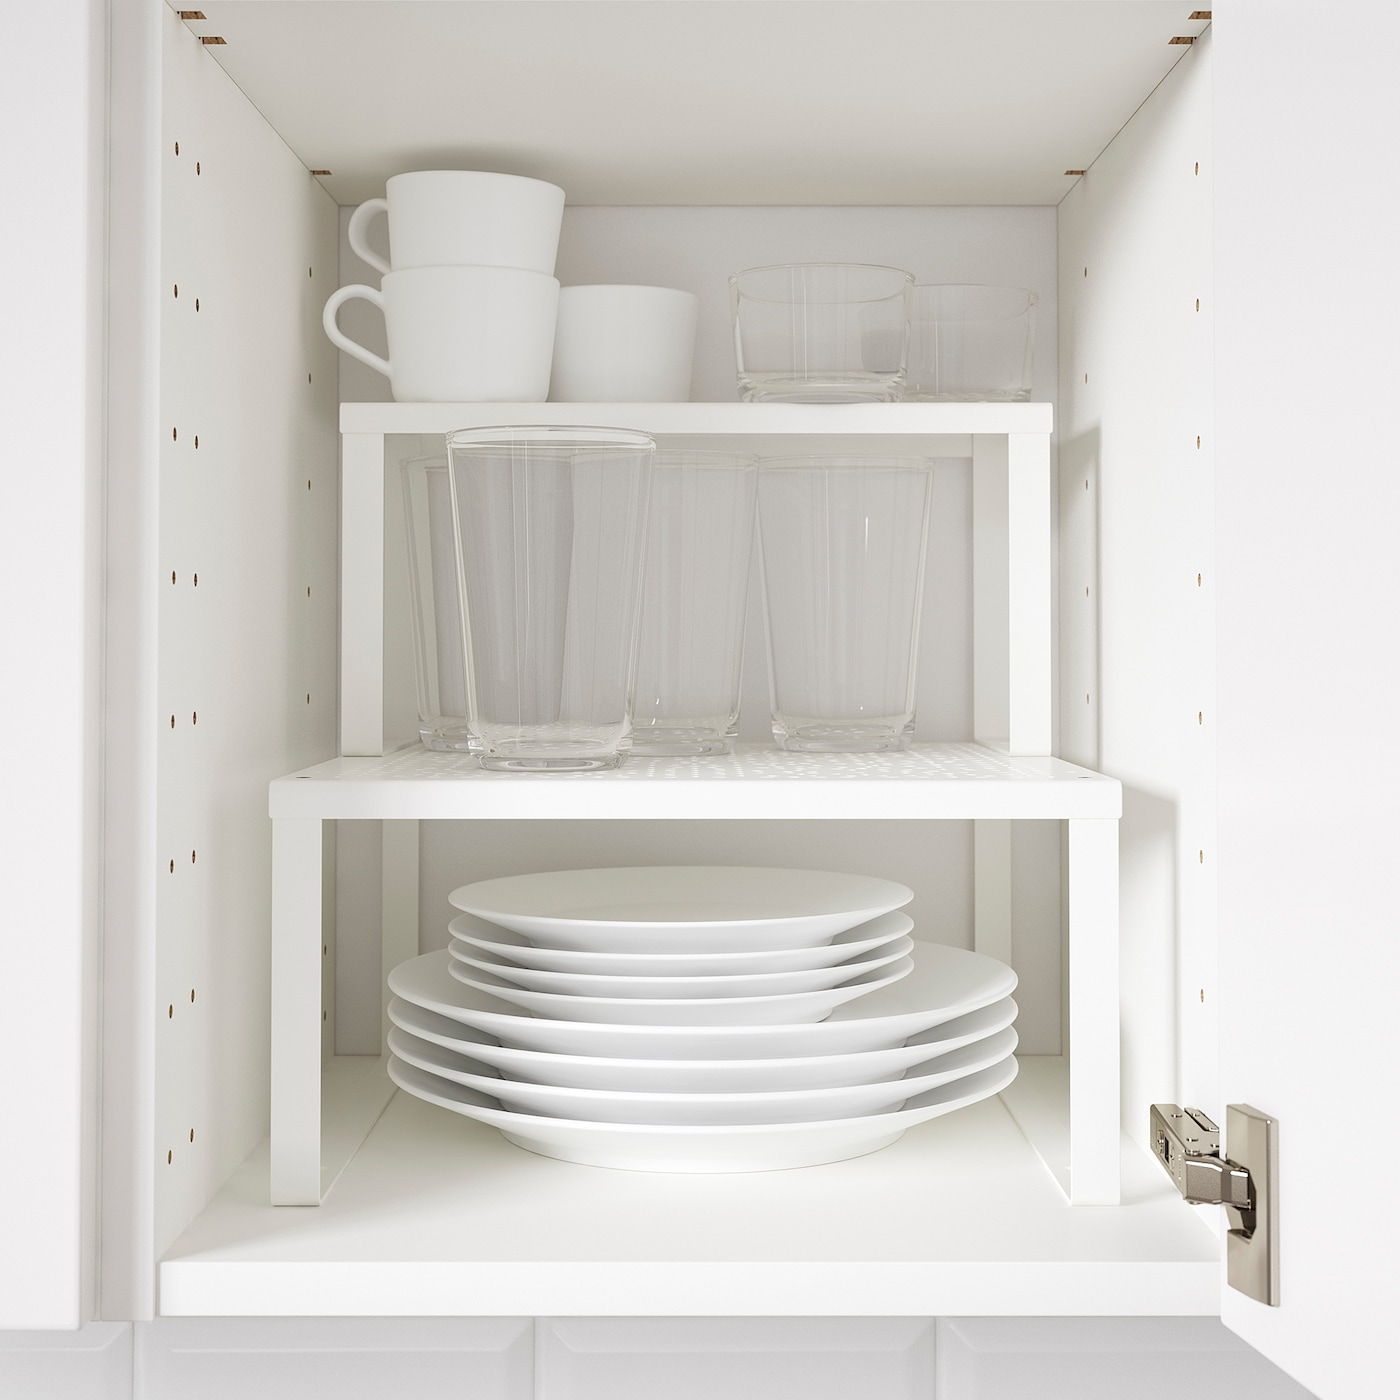 What Holds The Shelves In Ikea Kitchen Cabinets 2021